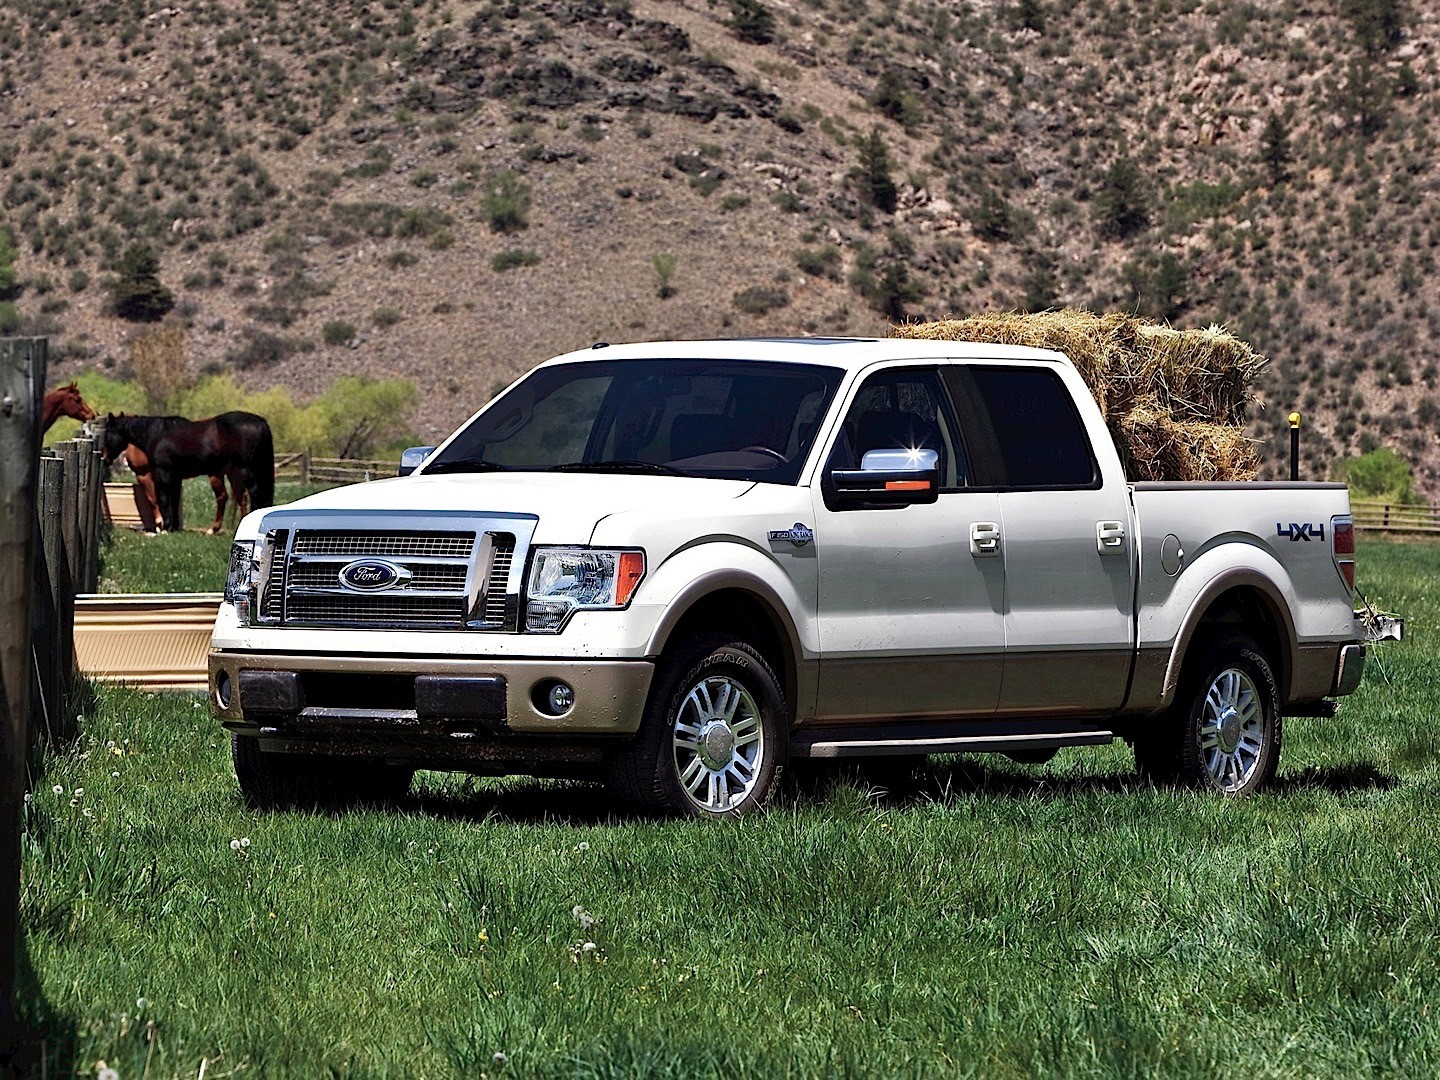 2010 F150 Platinum >> FORD F-150 Super Crew - 2009, 2010, 2011, 2012, 2013 - autoevolution